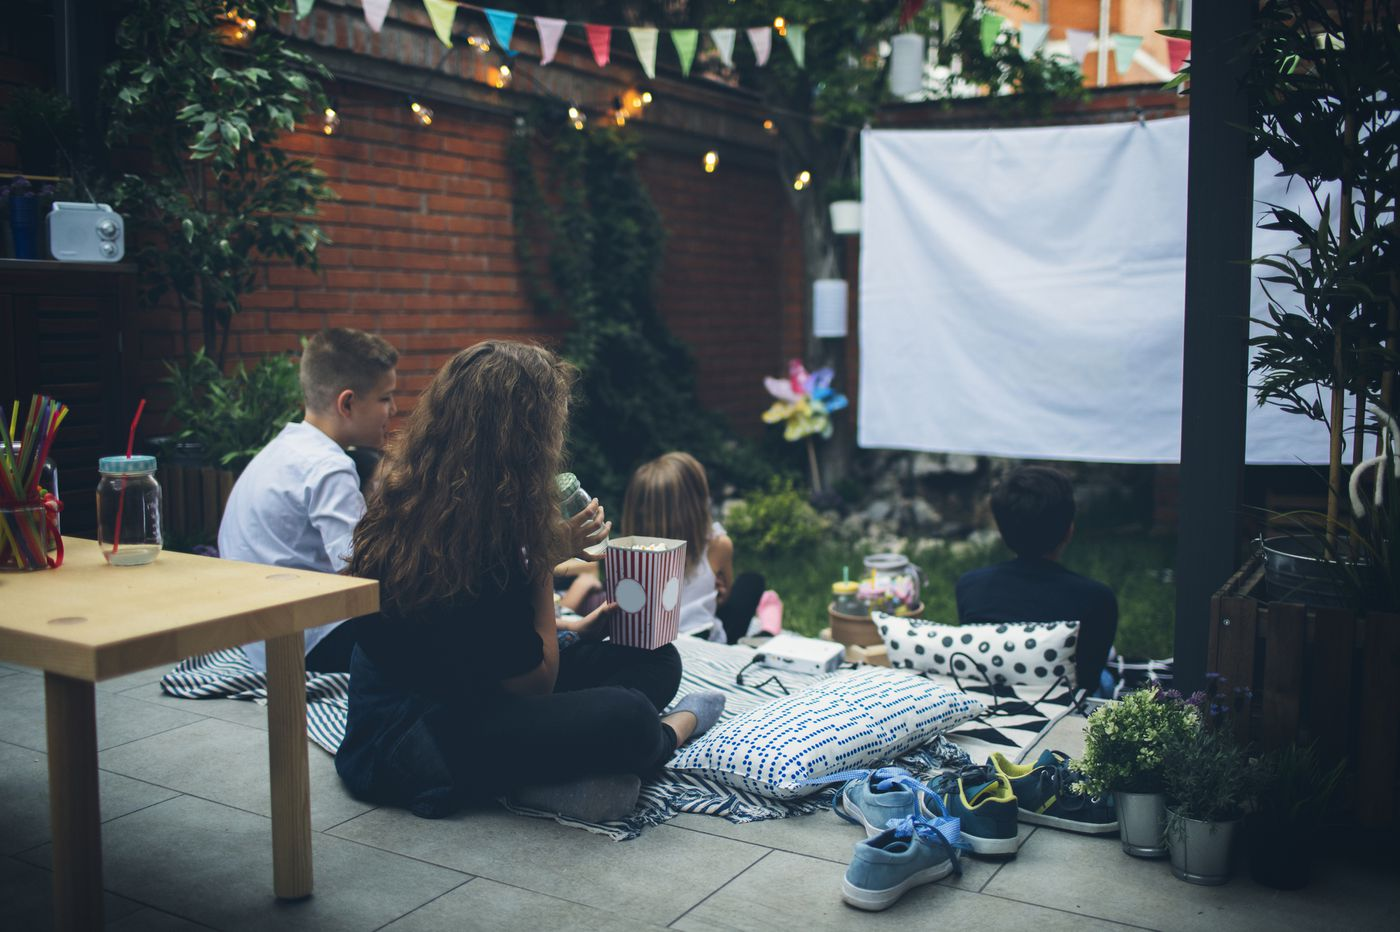 Watch 'Hamilton' in your backyard: How to set up an outdoor movie theater